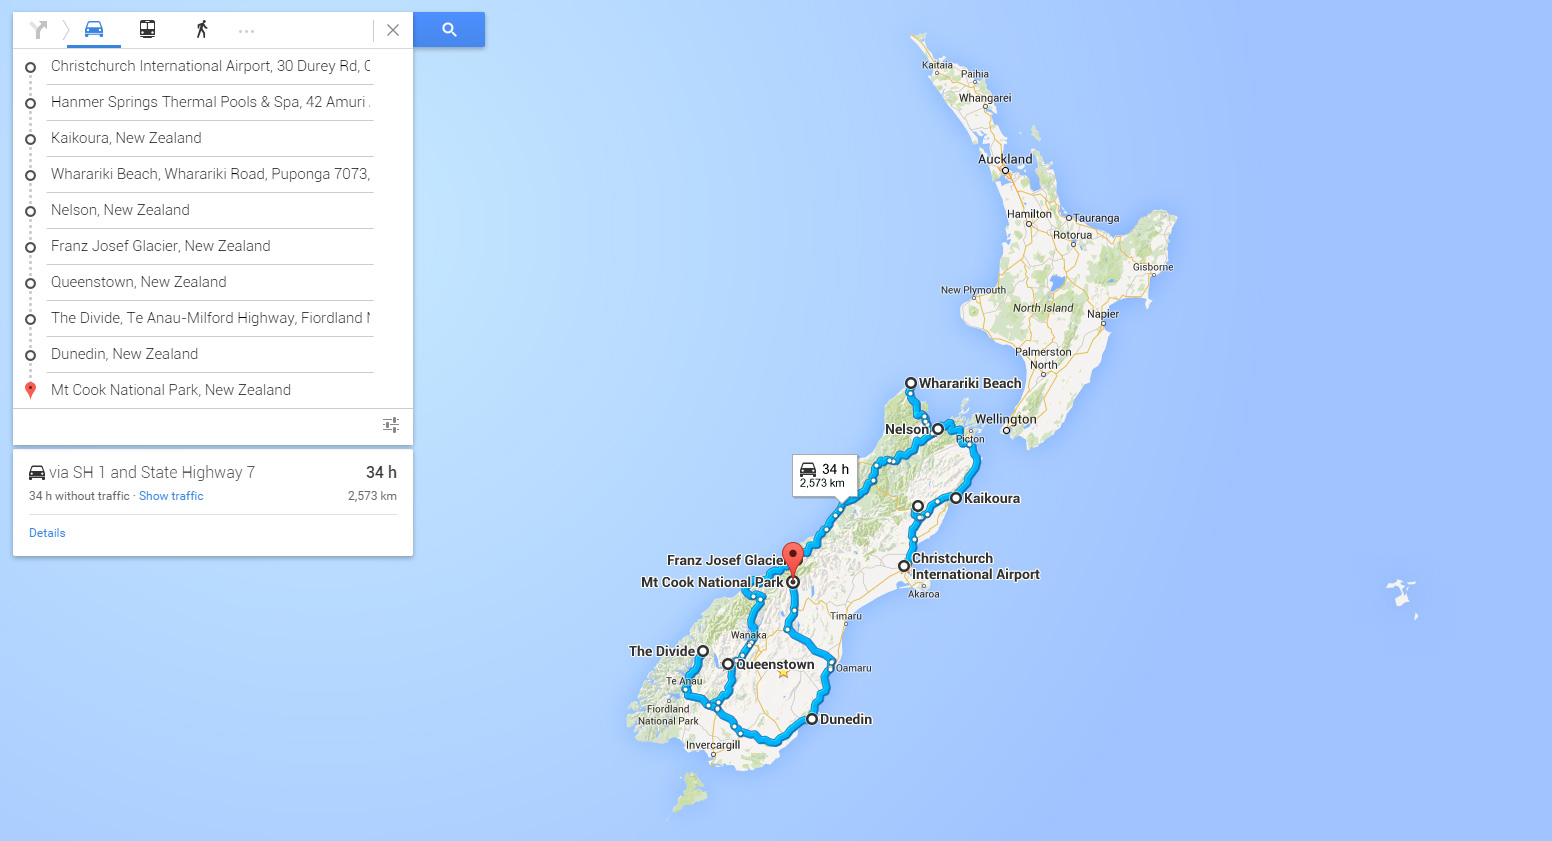 South Island, New Zealand - Travel Route